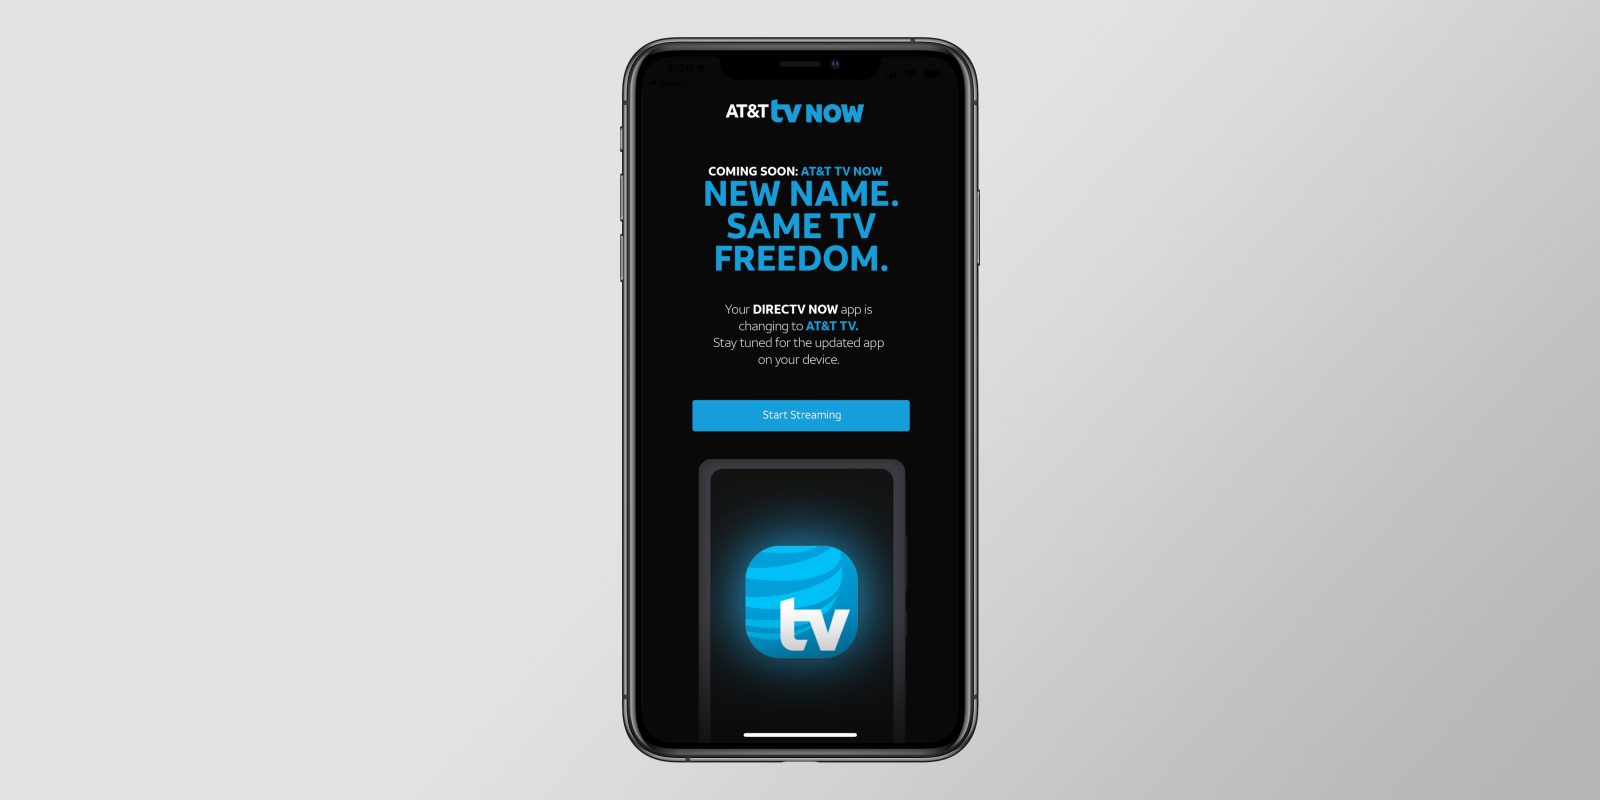 AT&T begins to roll out rebranded 'DirecTV Now' app under